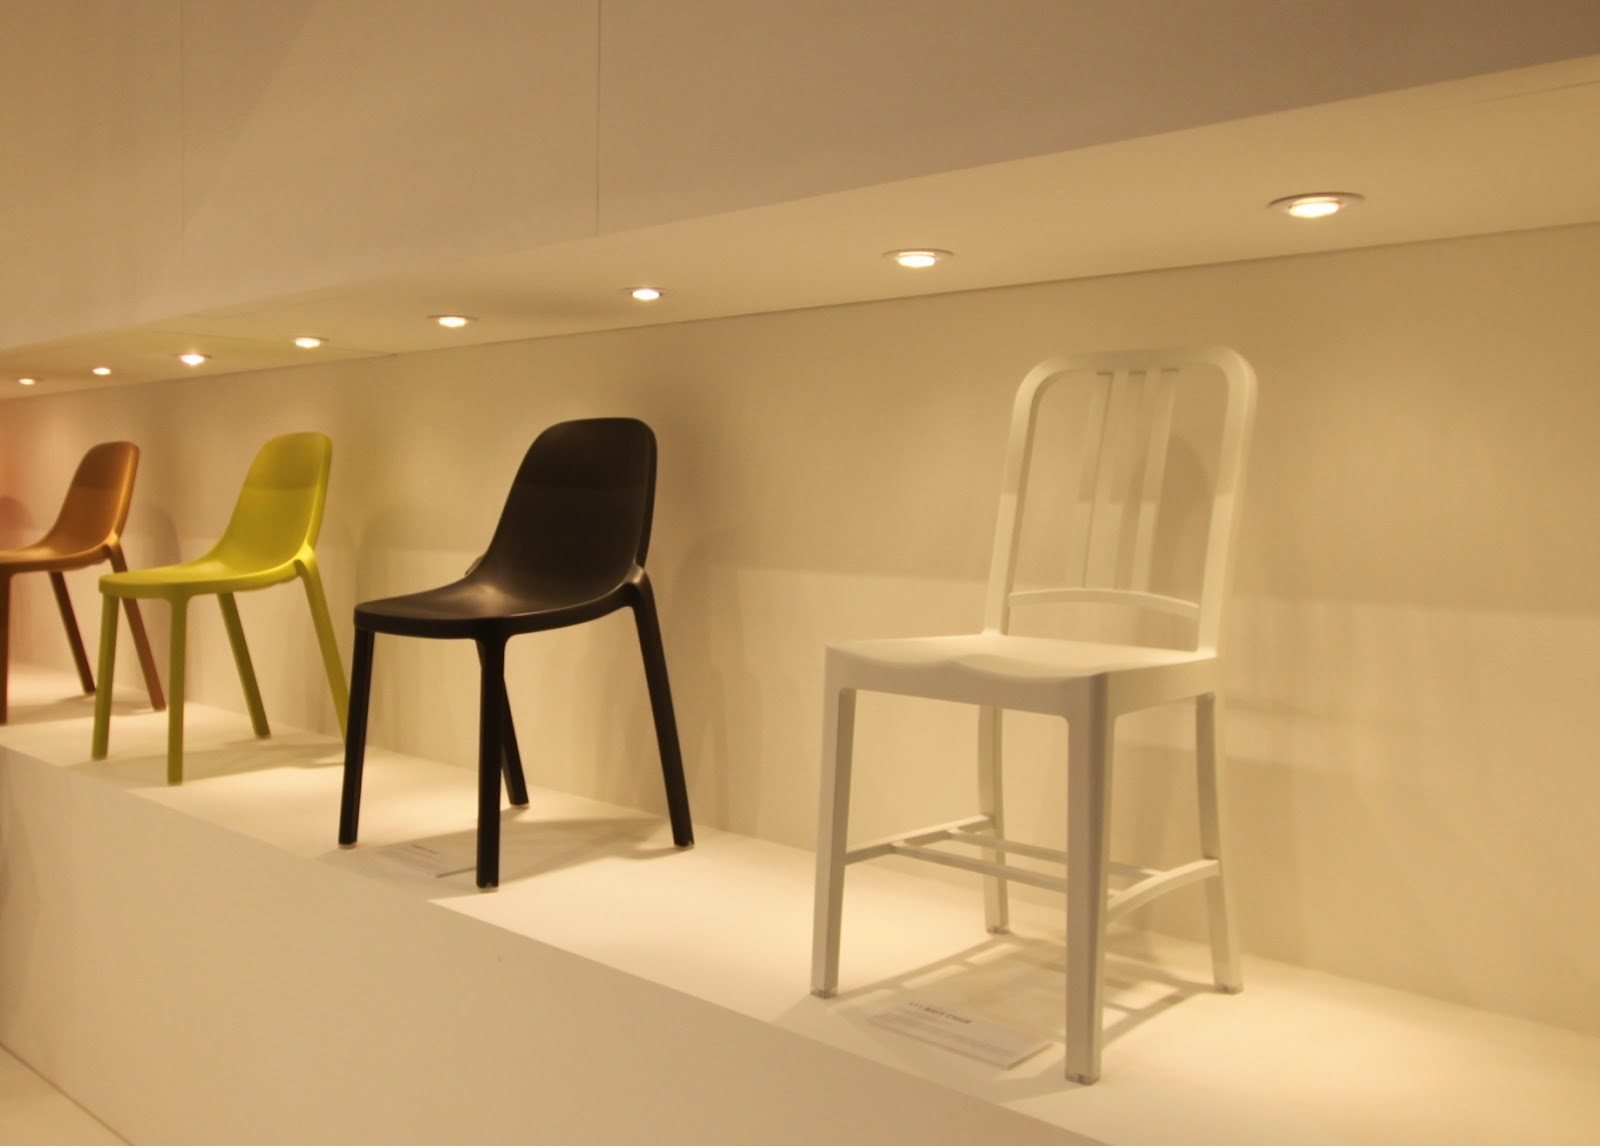 Broom chair for emeco in 2012 to showcase the properties of a new wood - Dwell On Design 2013 Chairs Emeco